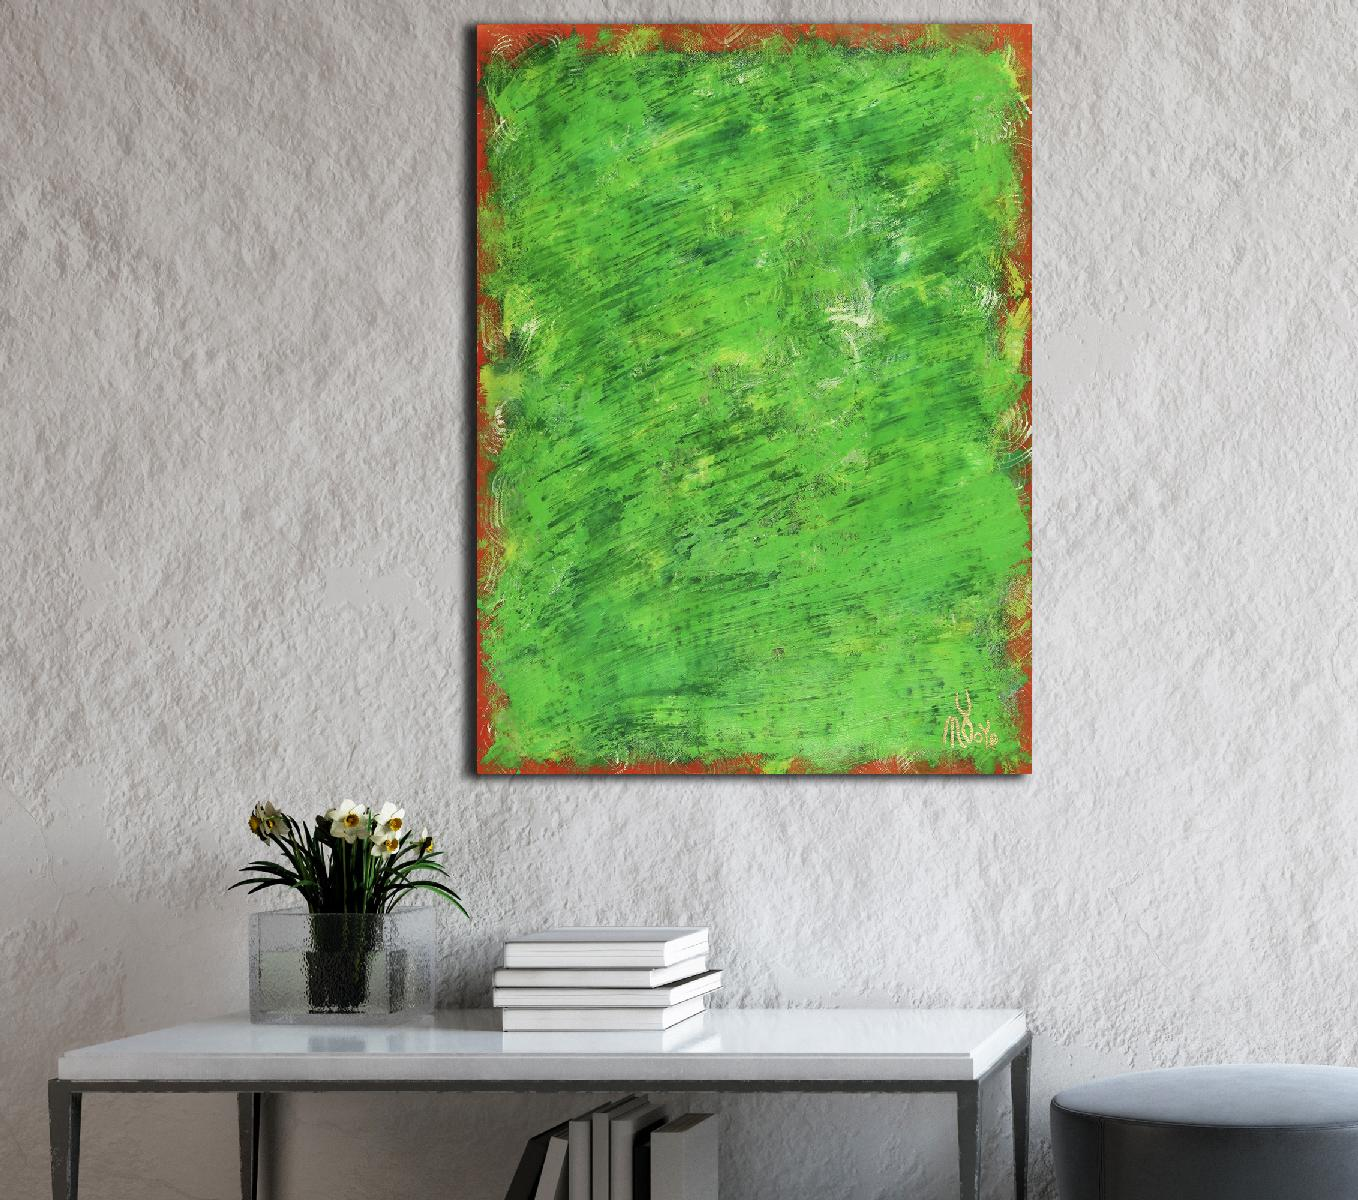 A Green Oasis - Abstract on paper (2020)